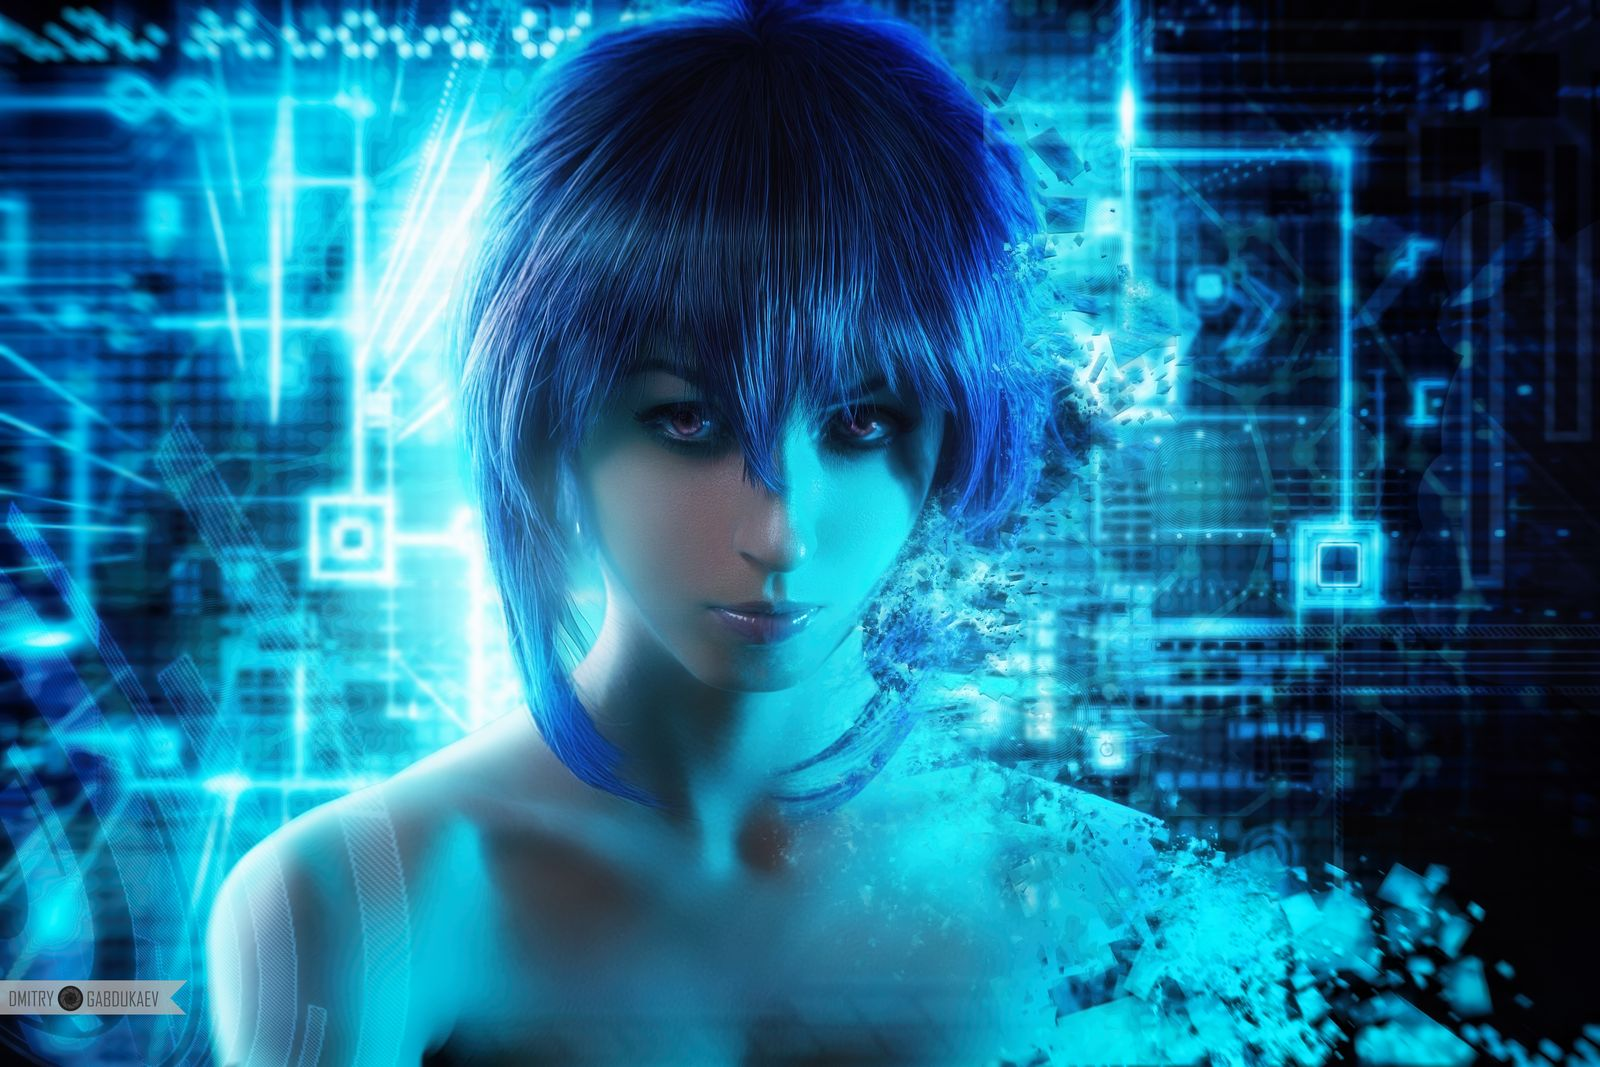 Motoko Kusanagi (Ghost in the Shell) / Лера Химера